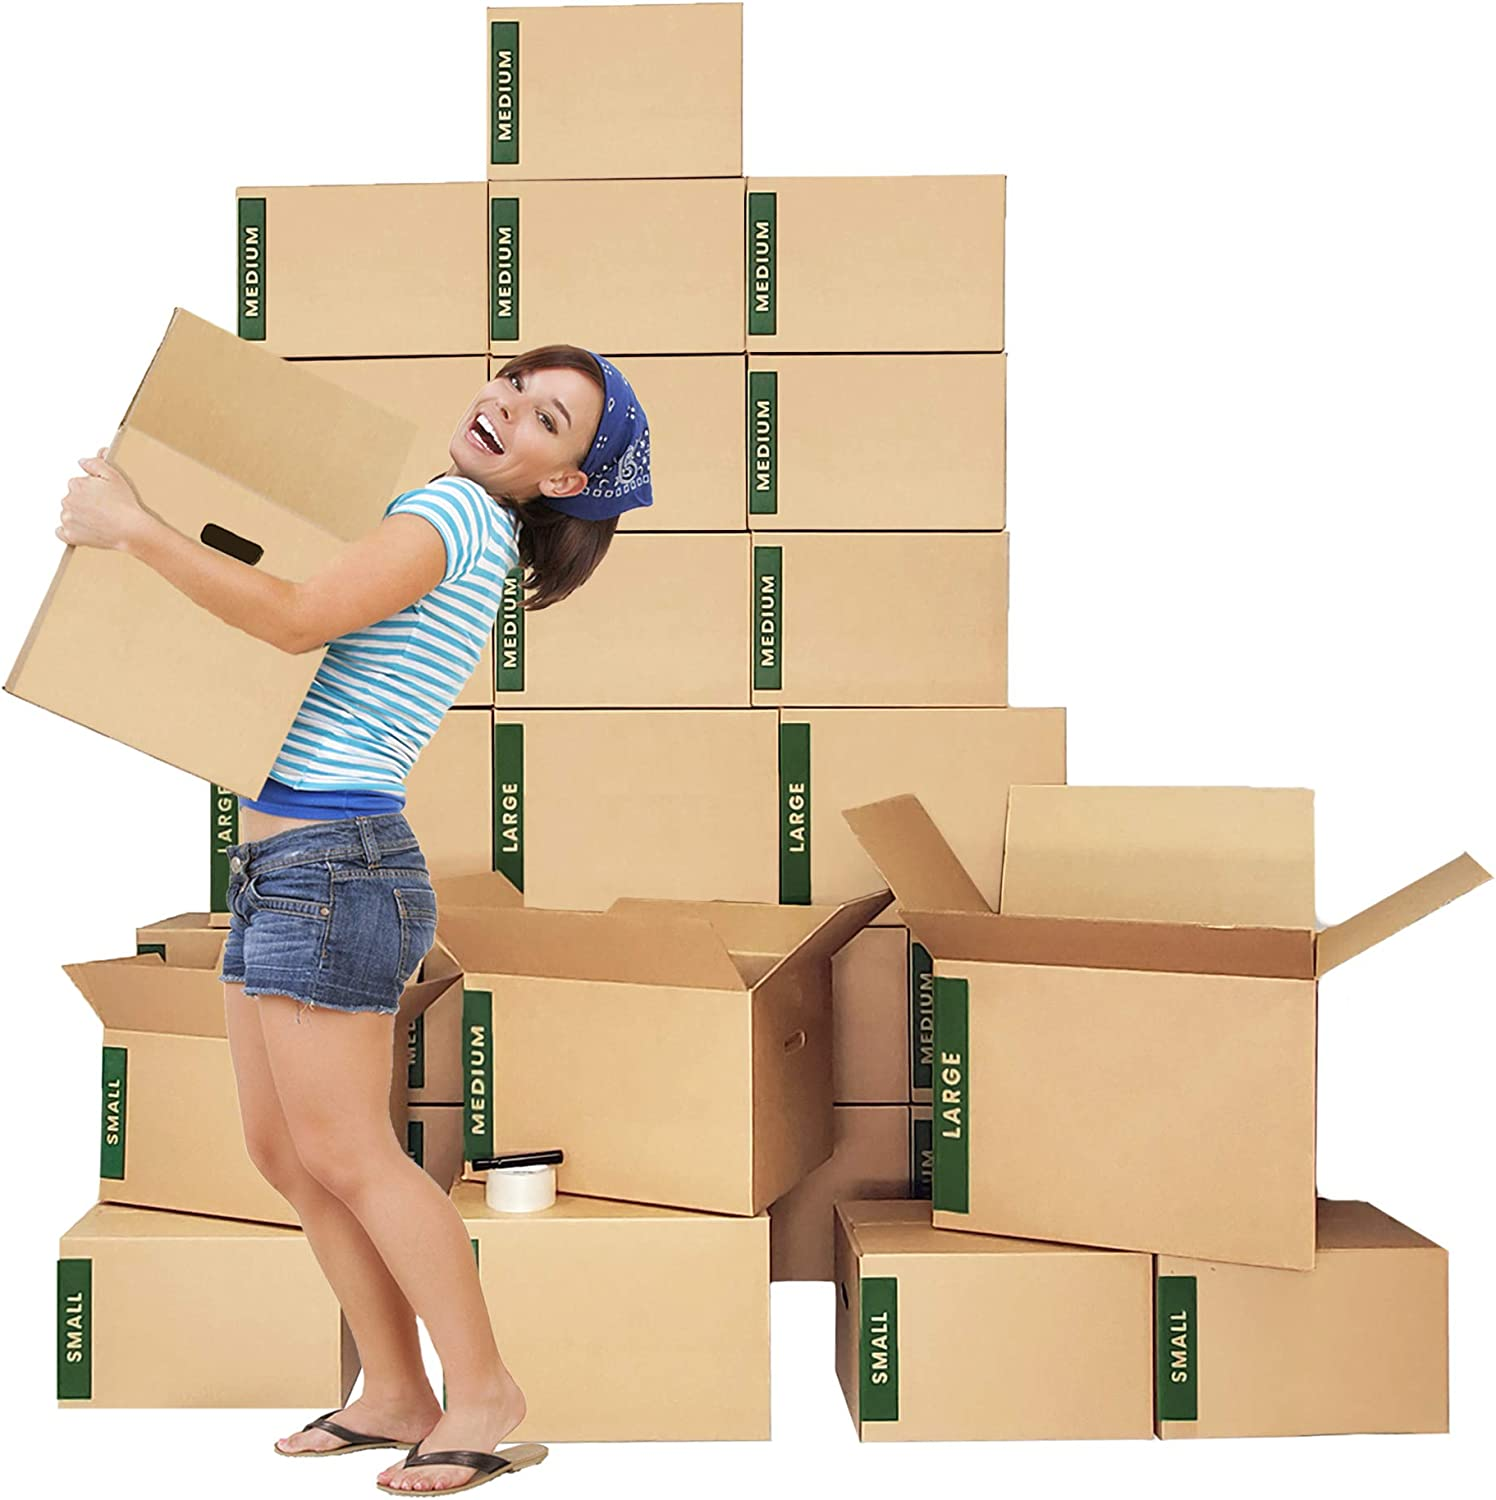 Amazon Com Moving Boxes Kit 30 Moving Boxes Large Medium Small Plus Supplies Cheap Cheap Moving Boxes Office Products